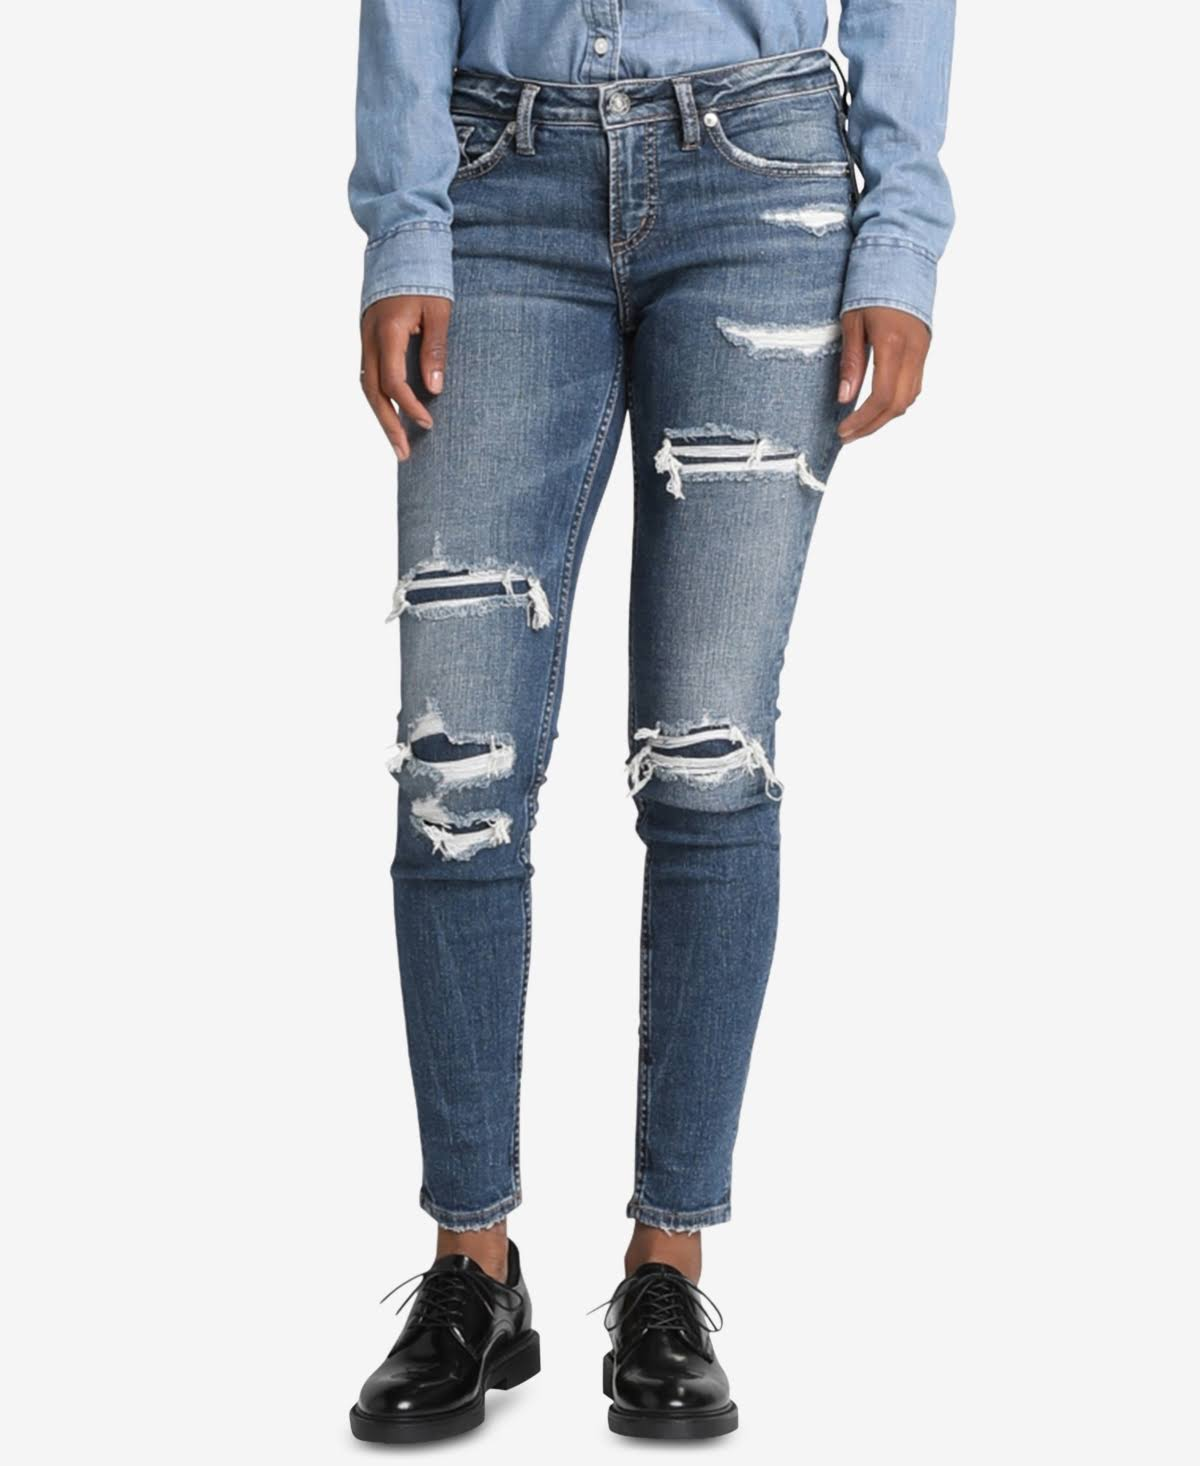 Silver Jeans Co. Aiko Destructed Skinny Jeans - Indigo 31 29